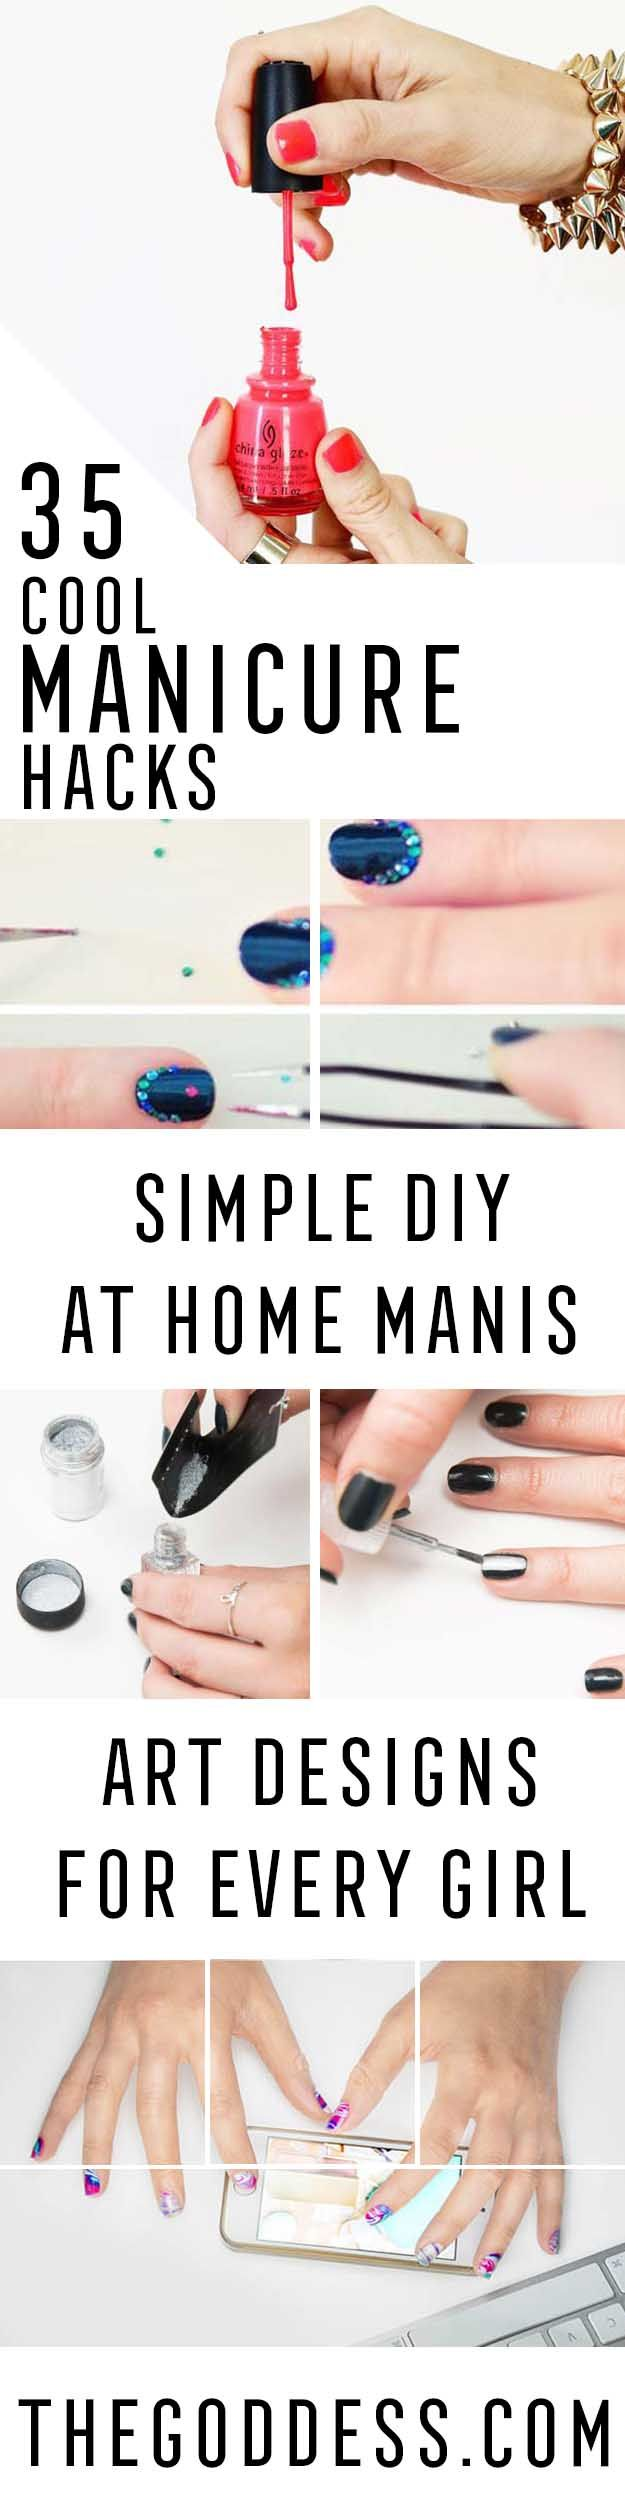 Cool Manicure Hacks - Amazing DIY Manicure Hacks You can Do At Home To Achieve The Same Style You Would Pay For. Whether Using Gel Or Acrylic, These Manicure Tips And Tricks Are Explained In Step By Step Tutorials To Help You Get The Nail Tips Every Girl Want. Life Changing Products And Tutorials For Awesome Nailart, Art Designs, And Simple Ideas And Nail Art You To Get You Looking Like The Salons Would. Try These Beauty Tricks And Nail Hacks For The Perfect Manicure. Tricks For Painting…